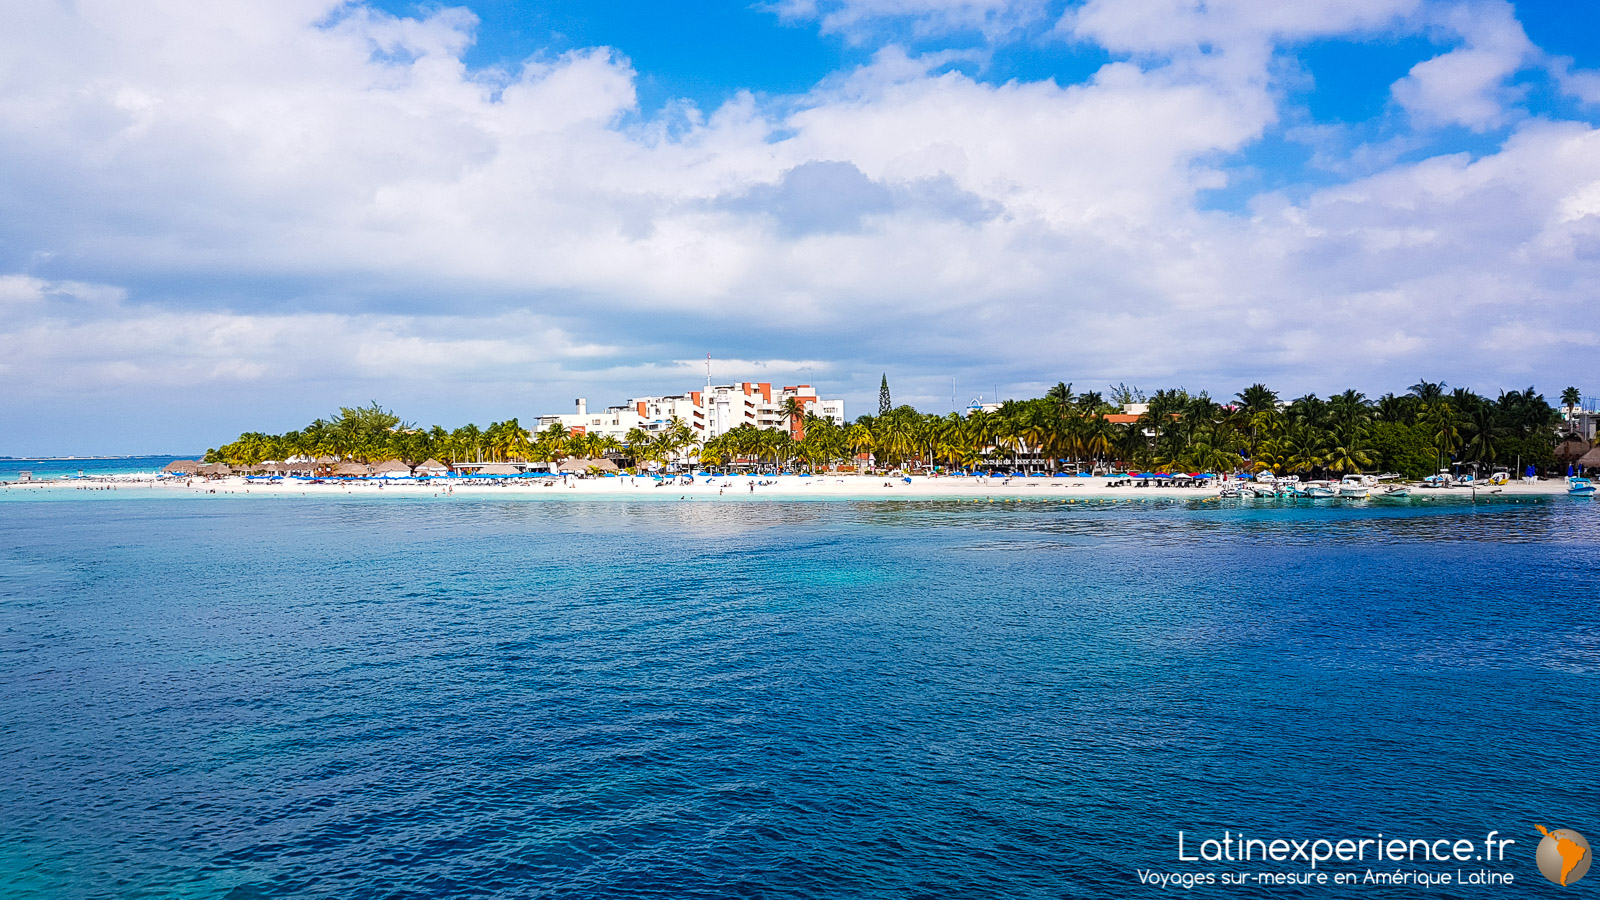 Mexique - Isla Mujeres - Punta Norte - Latinexperience voyages